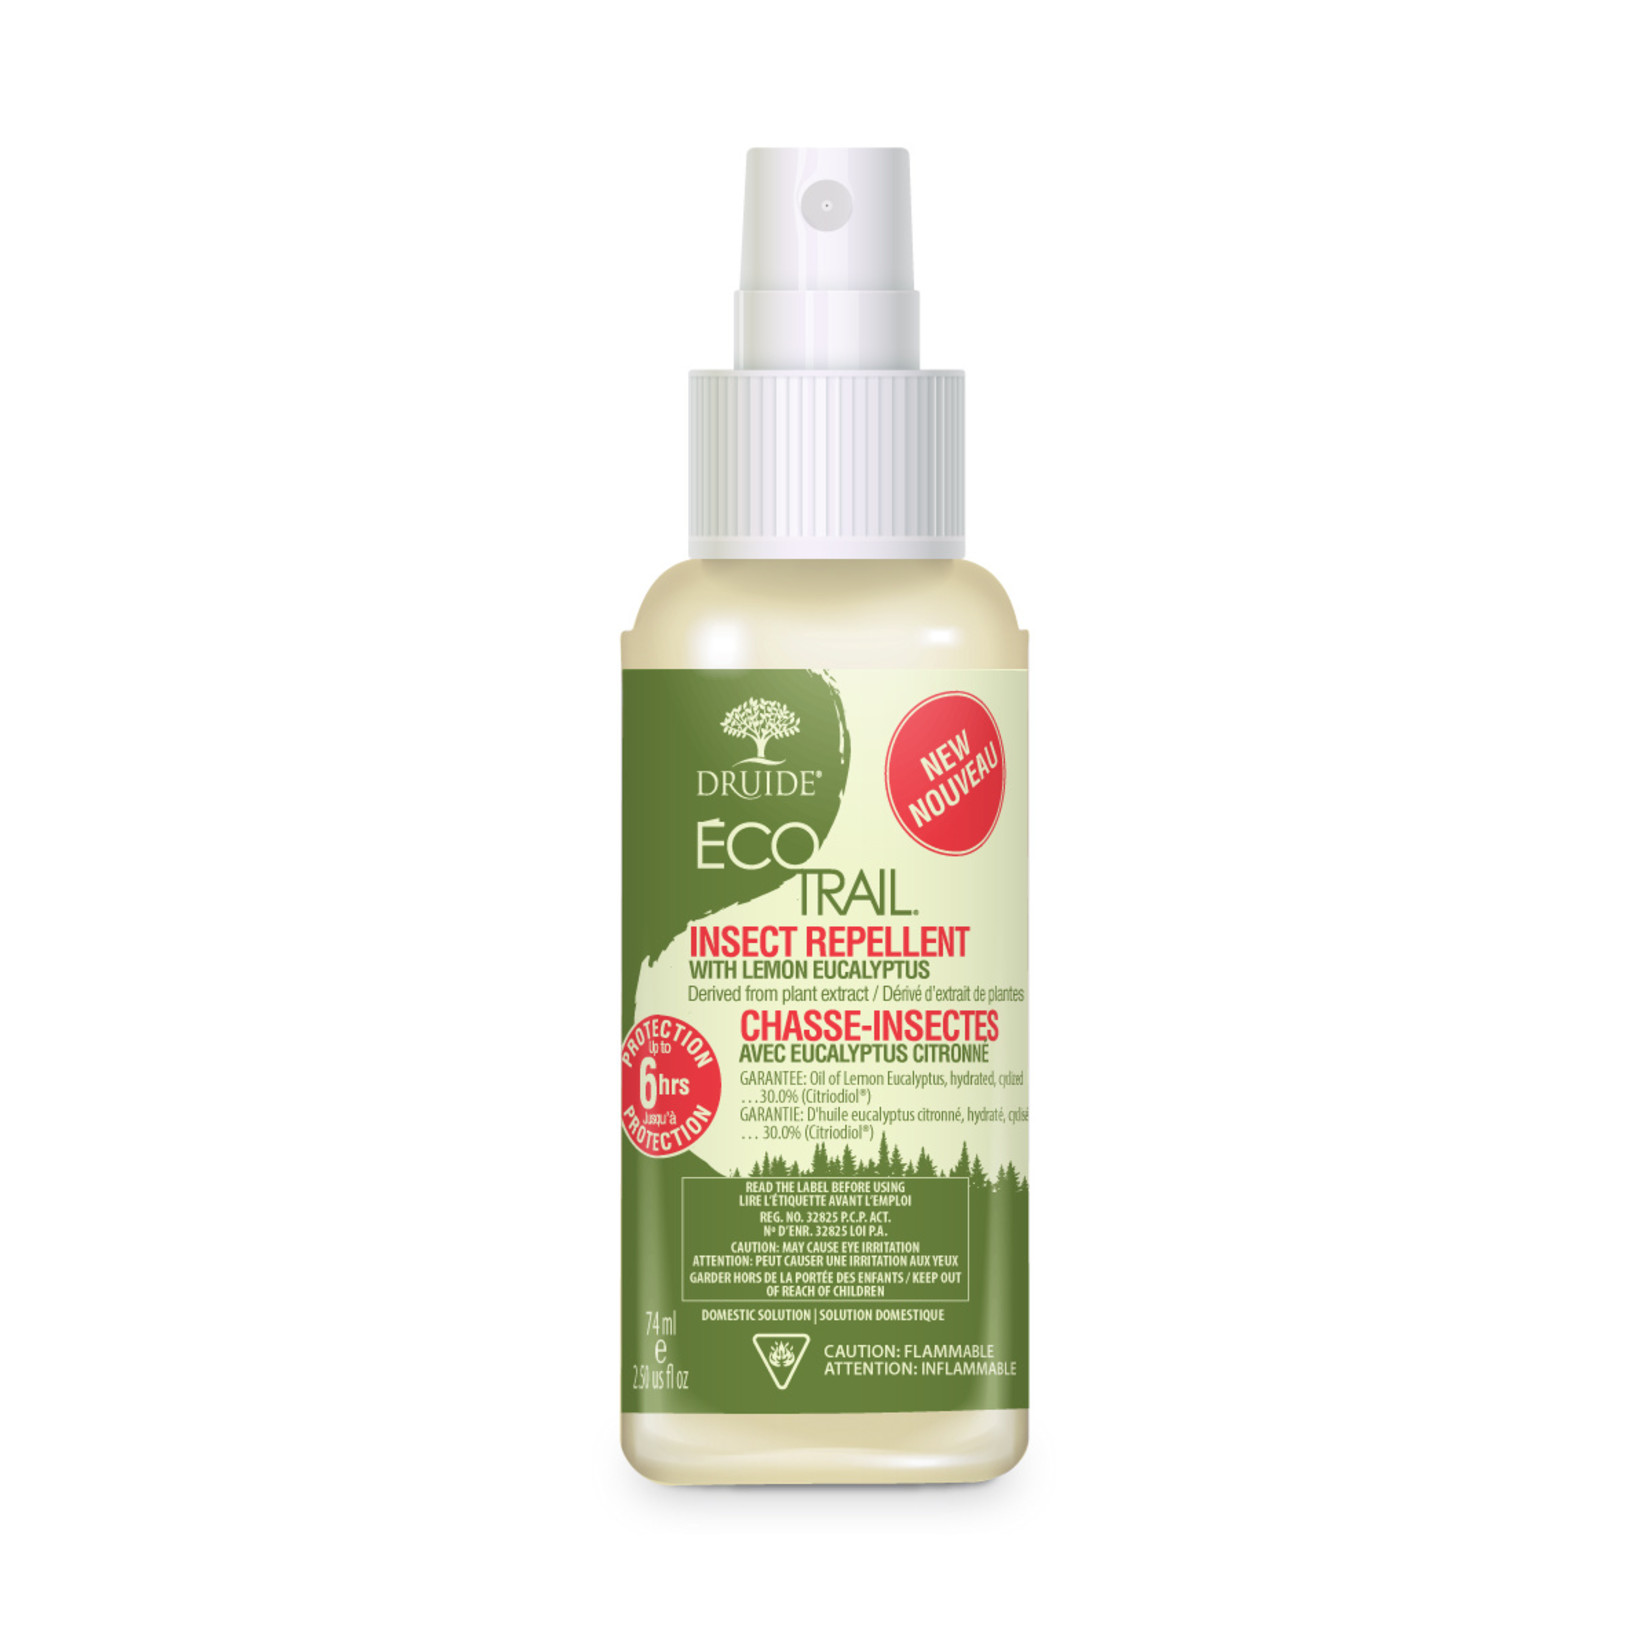 Druide Ecotrail Insect-Repellent Lotion 74ml